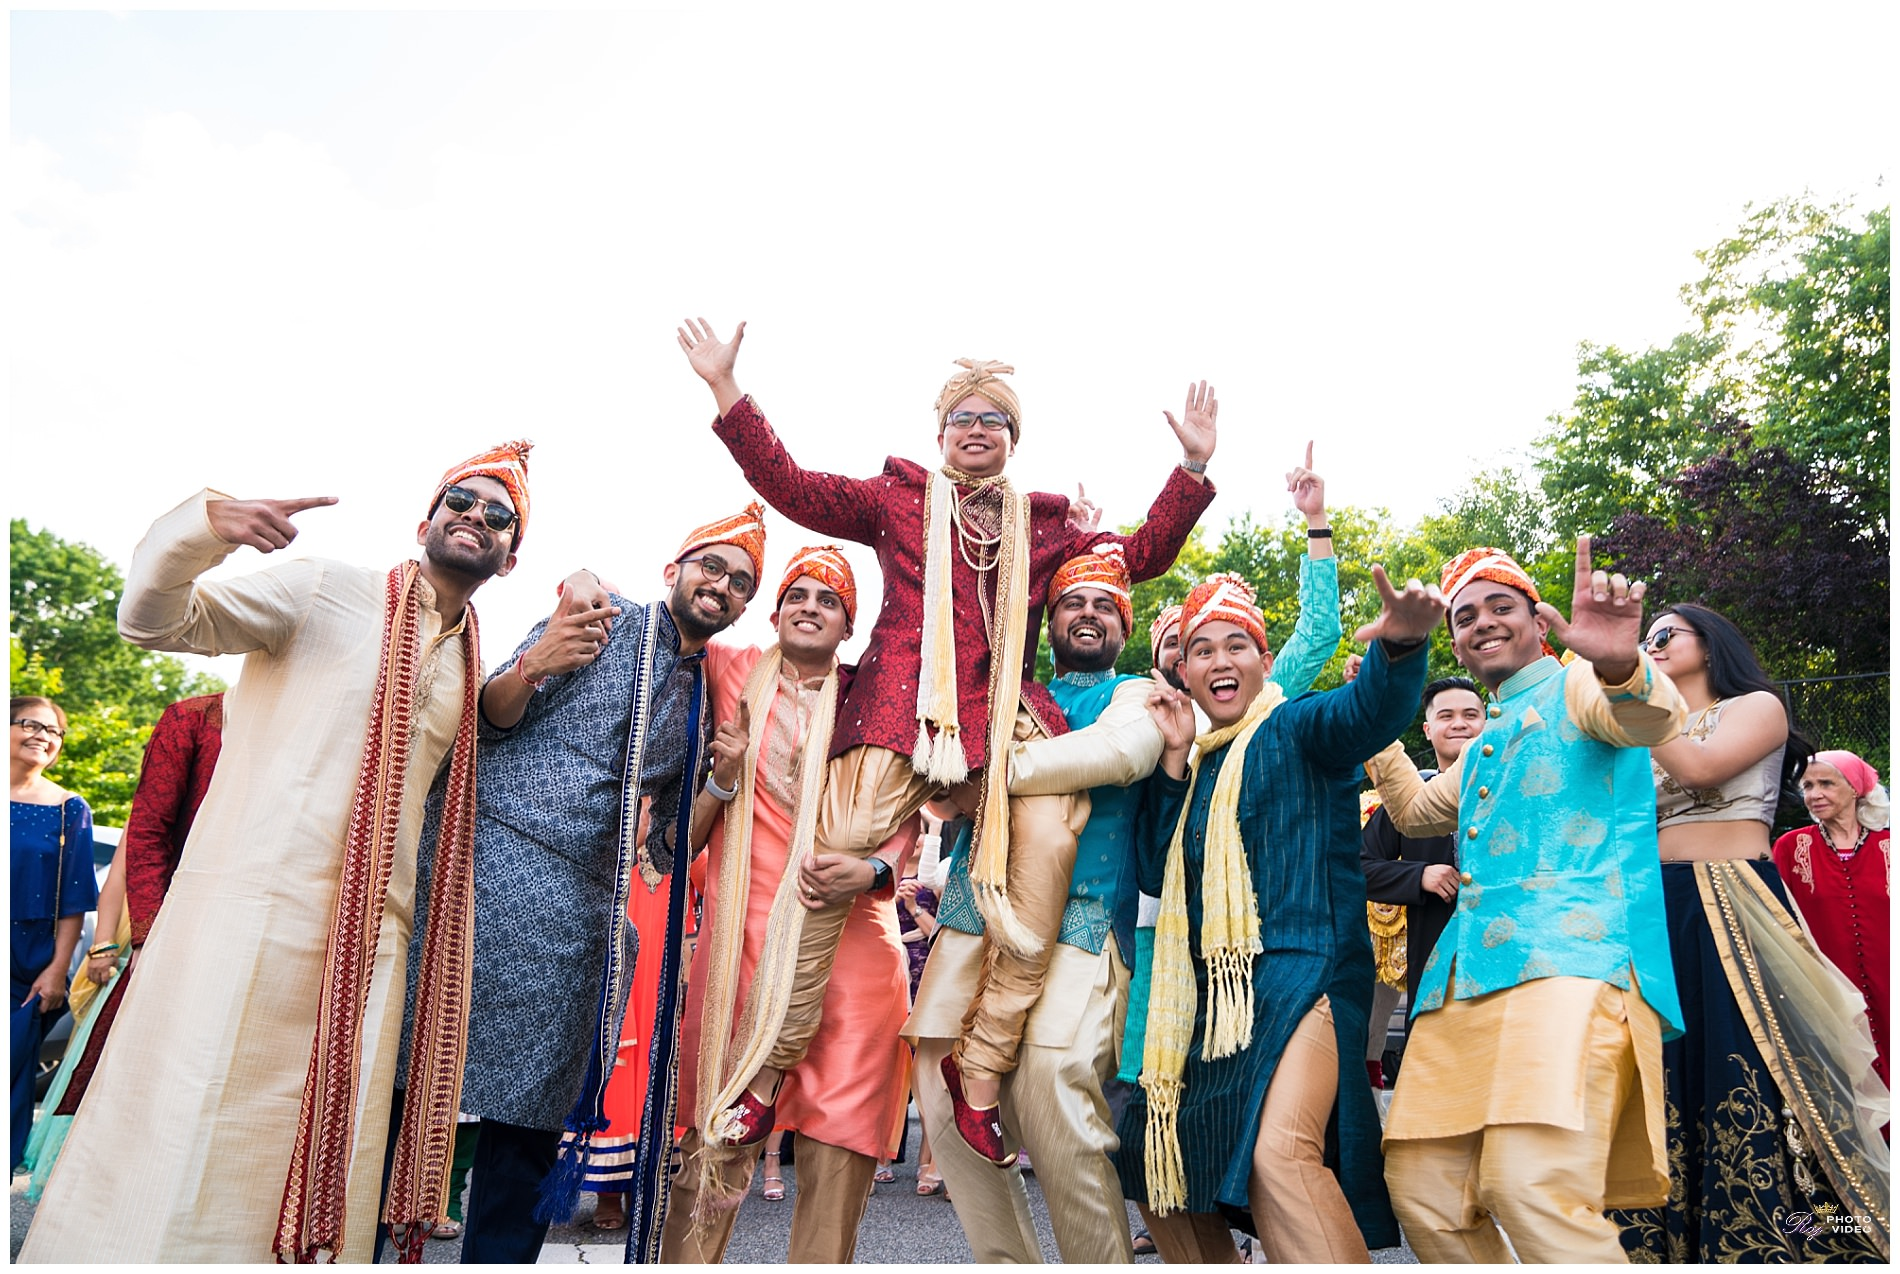 Aashirwad-Palace-Randolph-NJ-Hindu-Wedding-Ceremony-Khusbu-Jeff-5.jpg